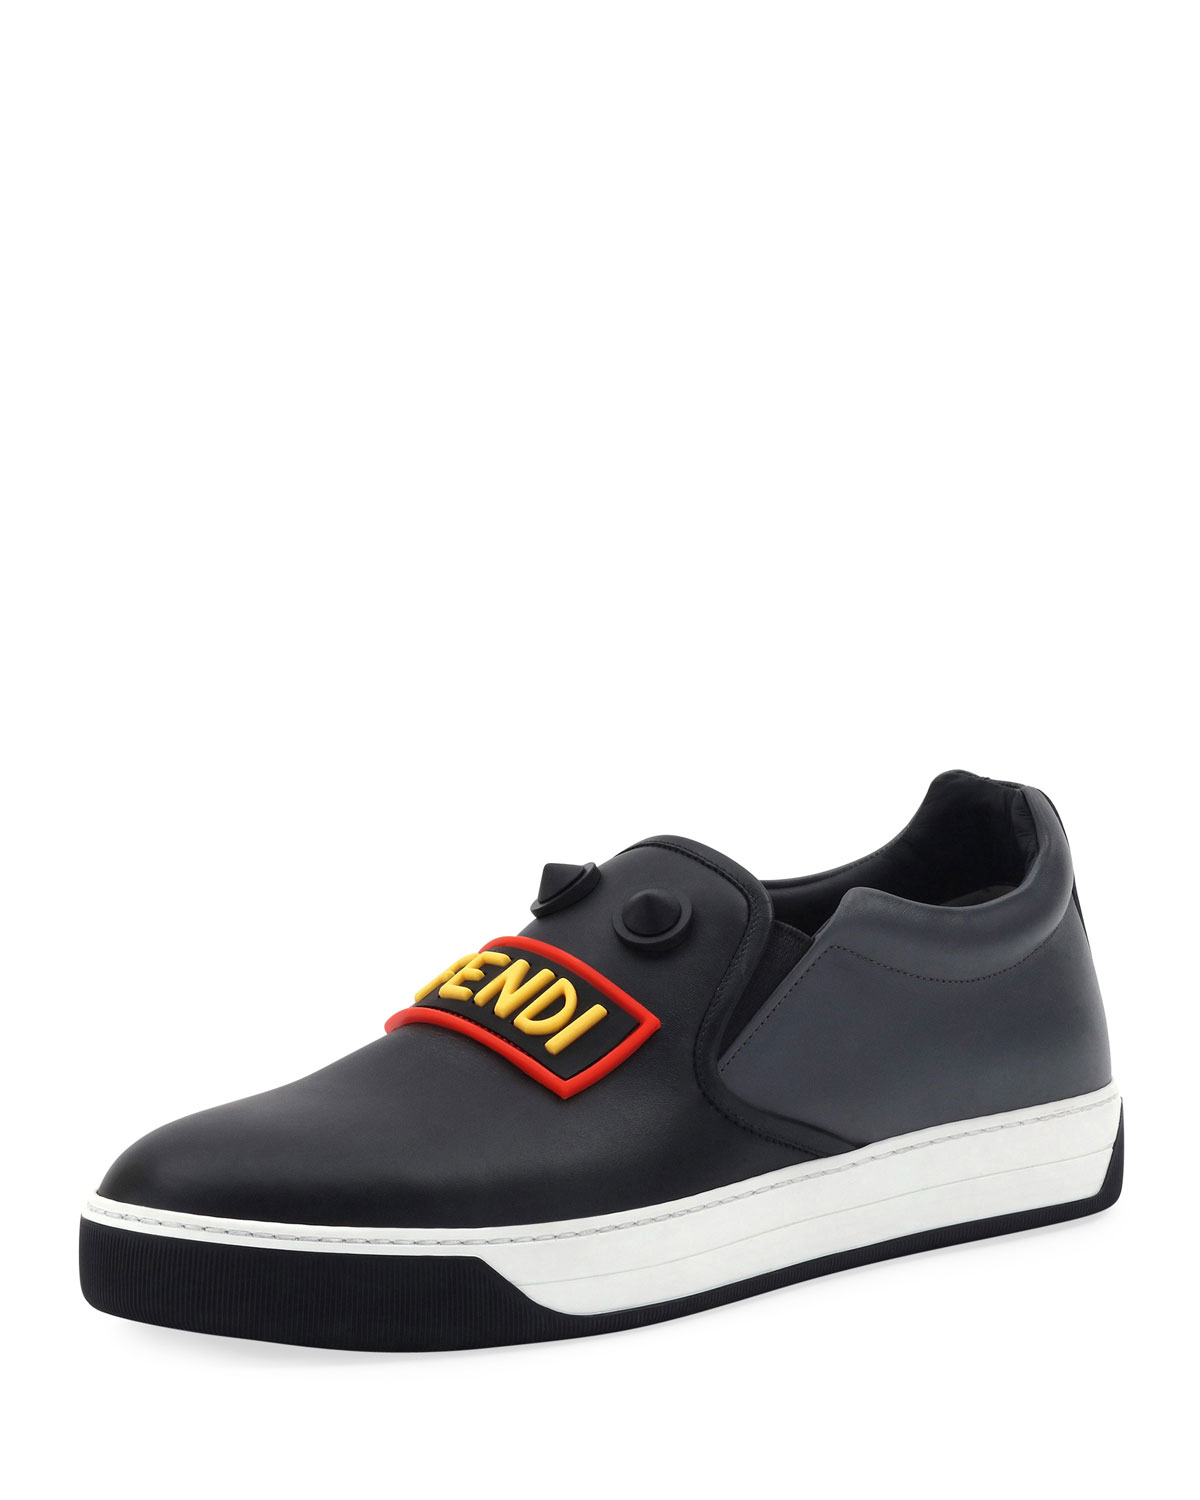 0b47b2a6a6f Fendi Vocabulary Face Leather Slip-On Skate Sneaker, Black | Neiman ...